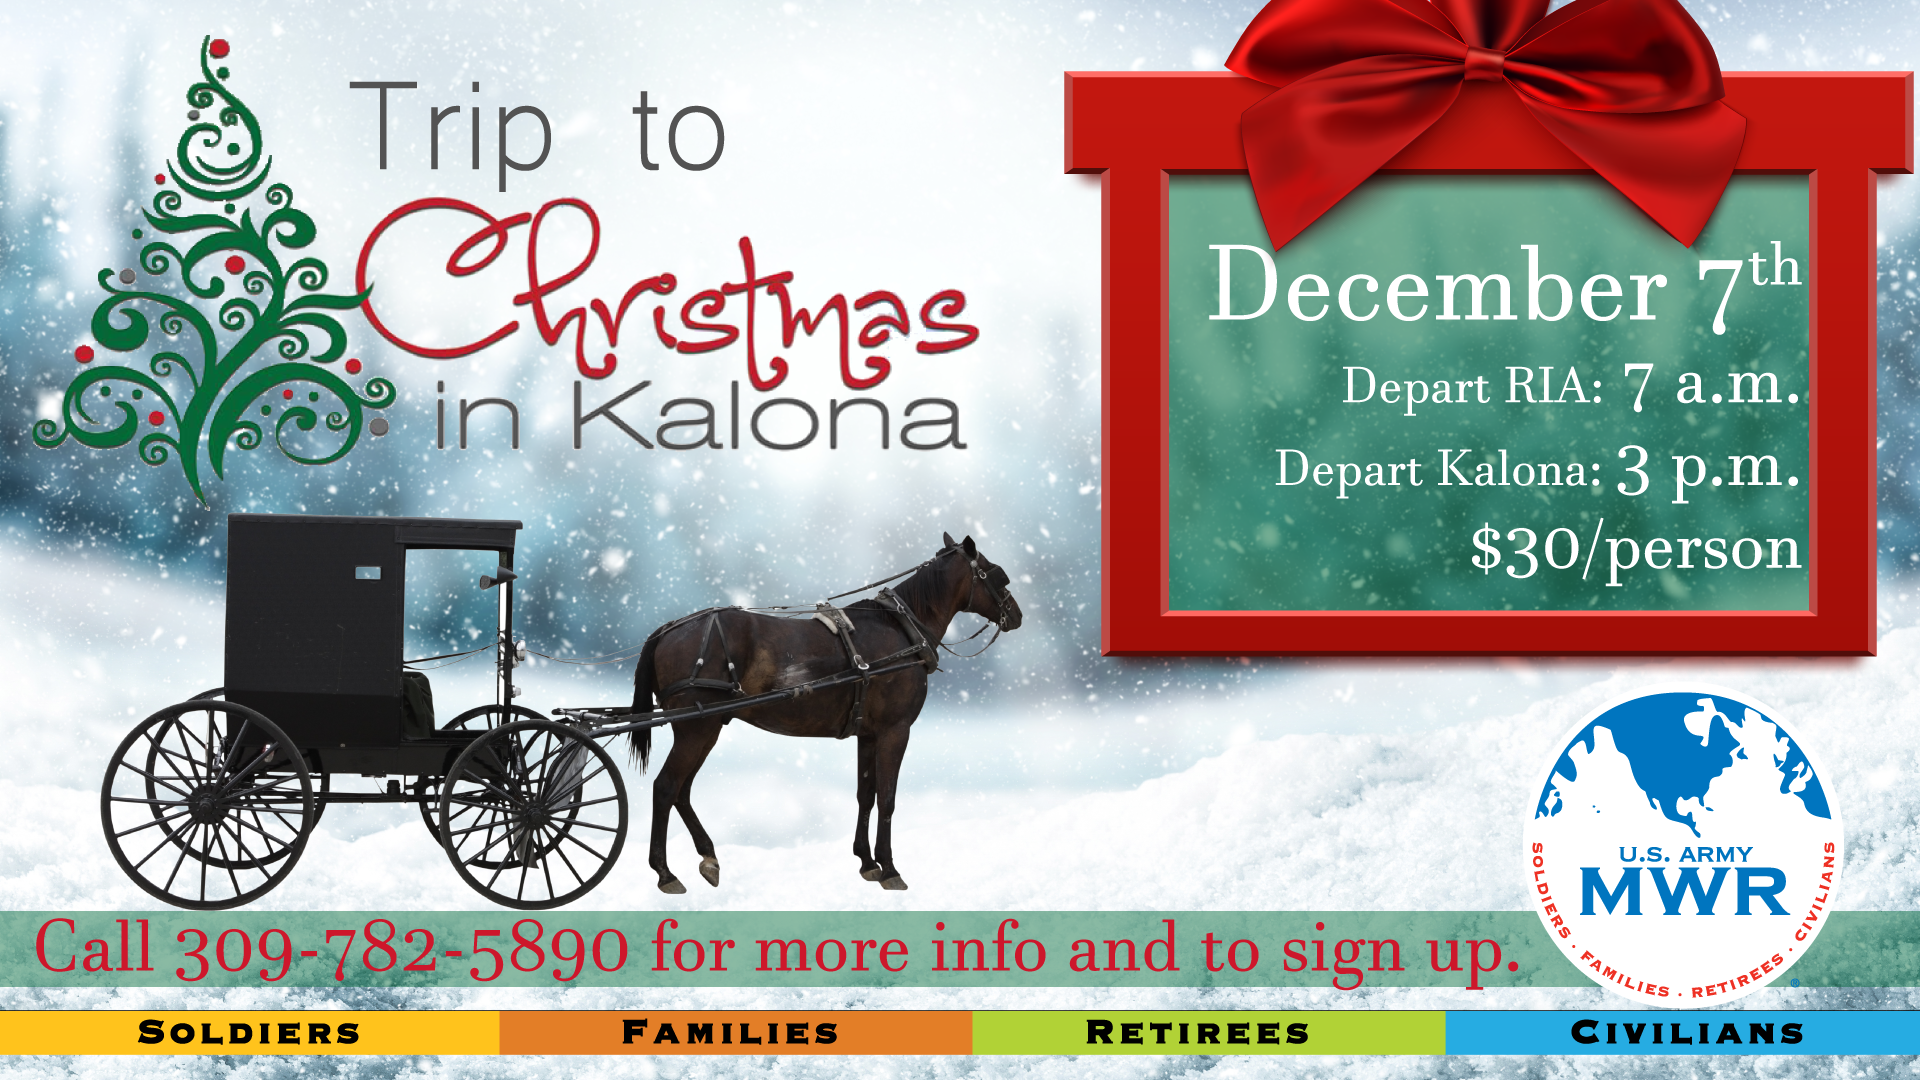 Trip to Christmas in Kalona